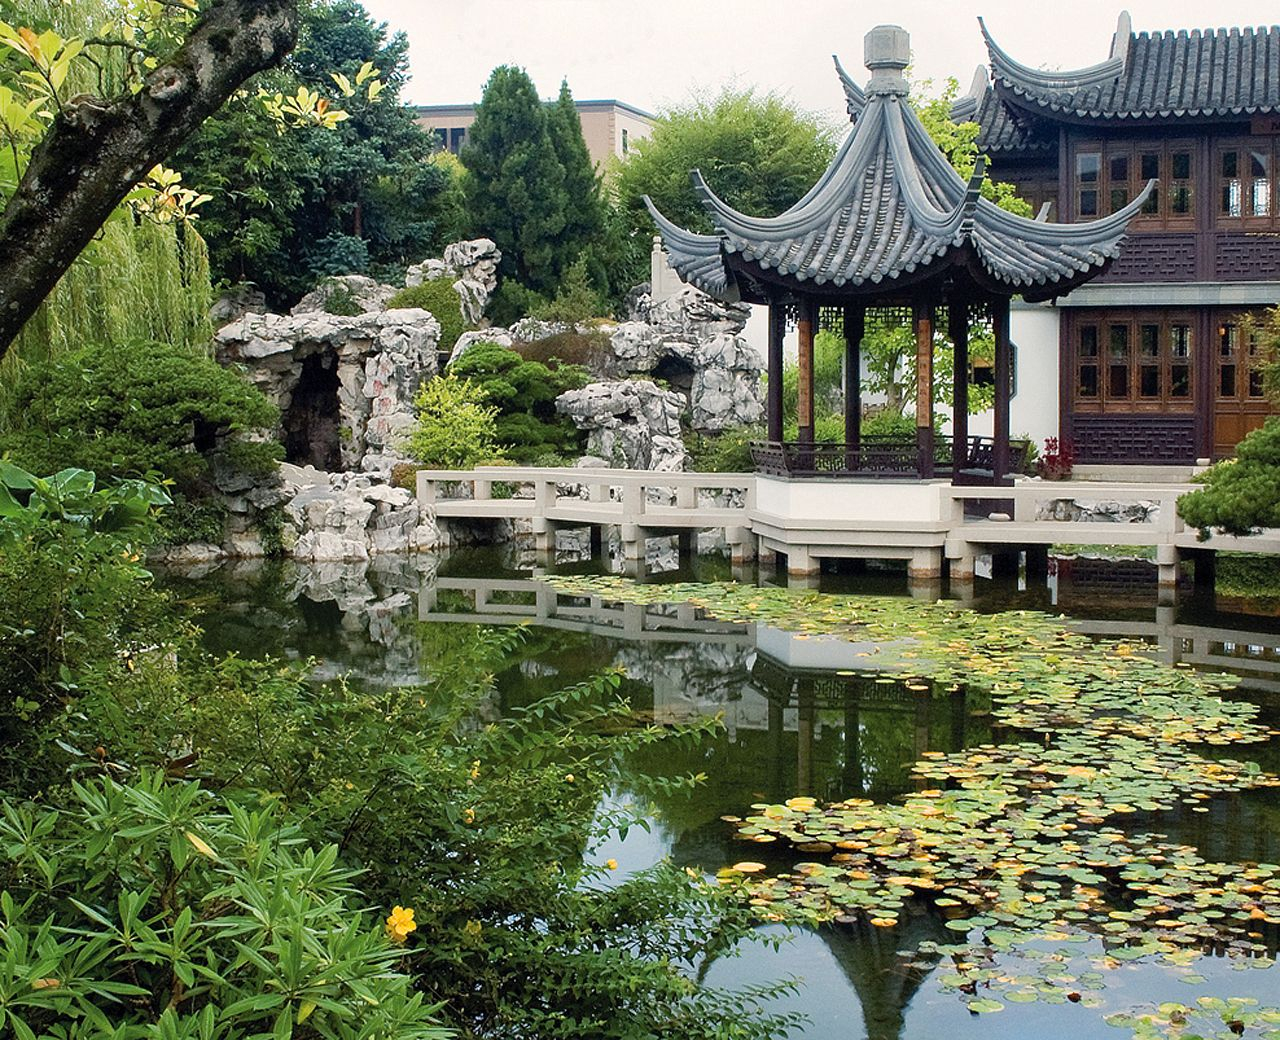 An authentic Ming Dynasty style garden built by Suzhou